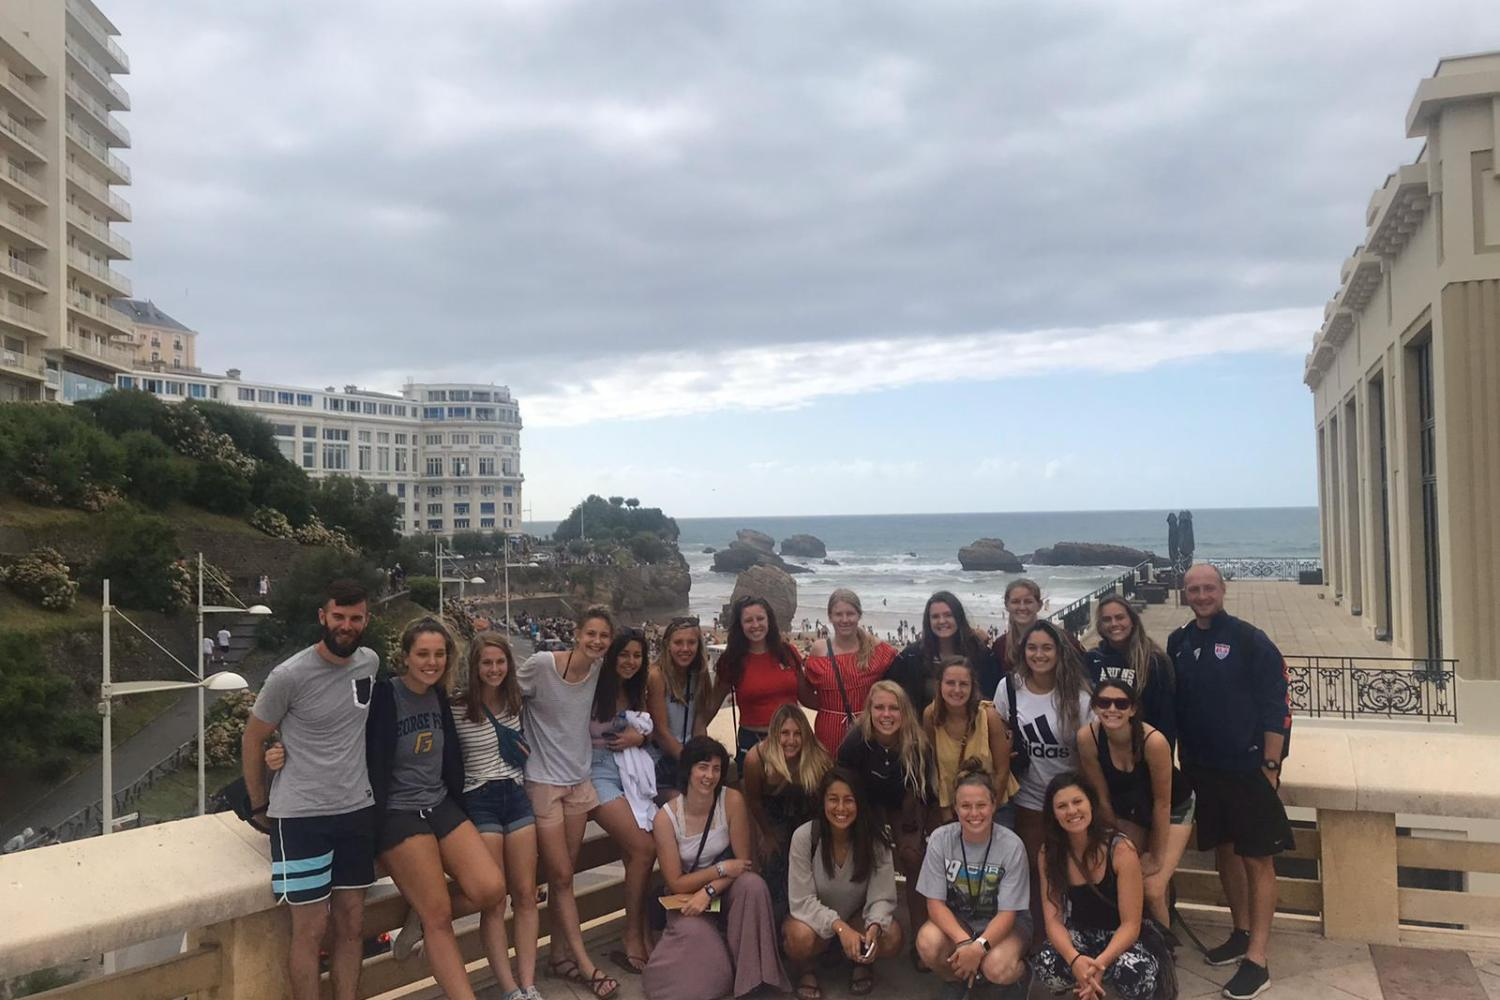 Taking a day trip to Biarritz, France